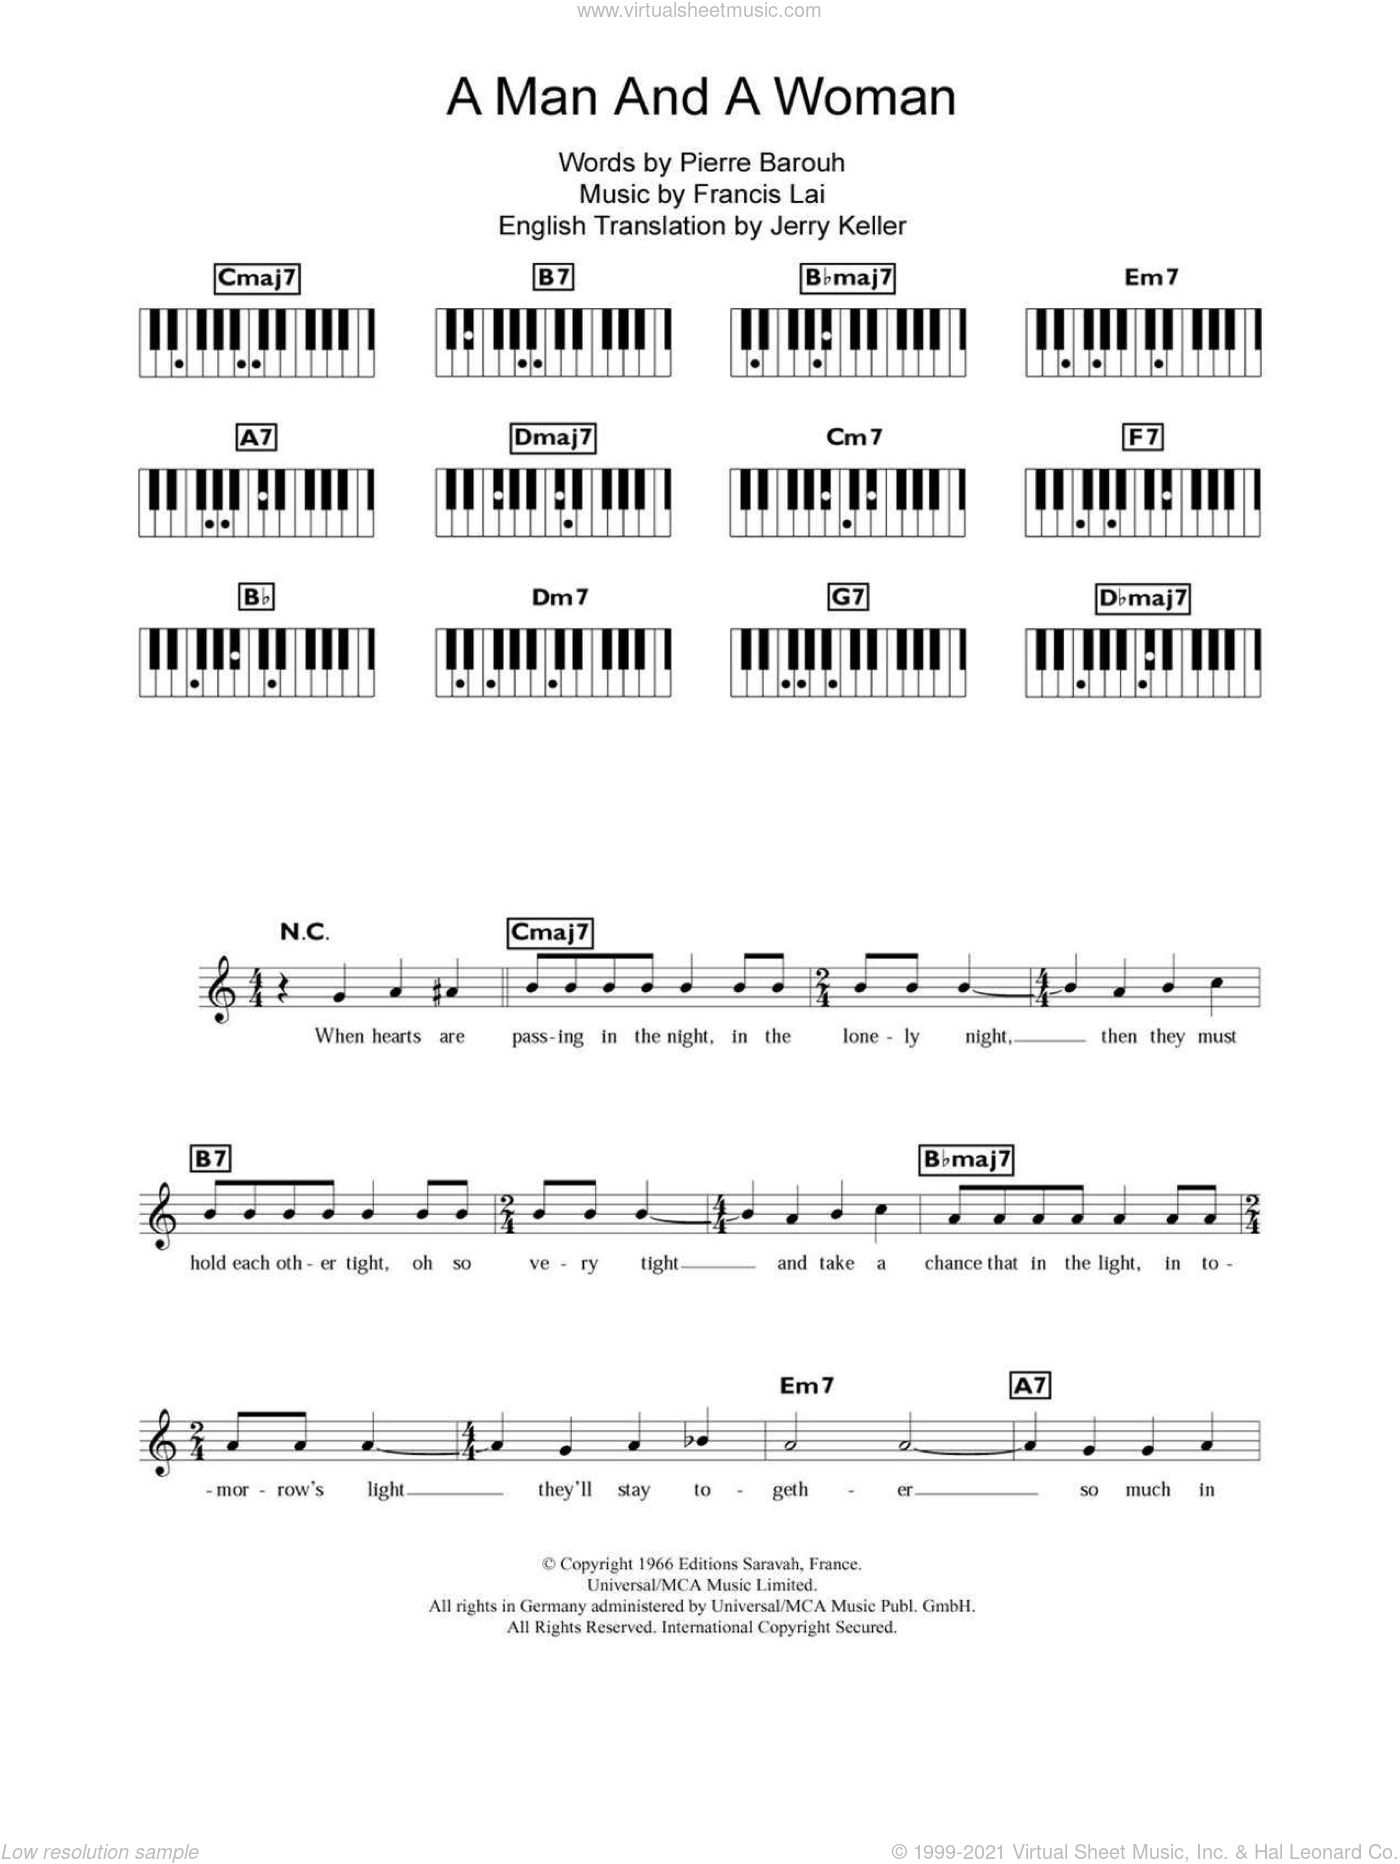 A Man And A Woman (Un Homme Et Une Femme) sheet music for piano solo (chords, lyrics, melody) by Pierre Barouh